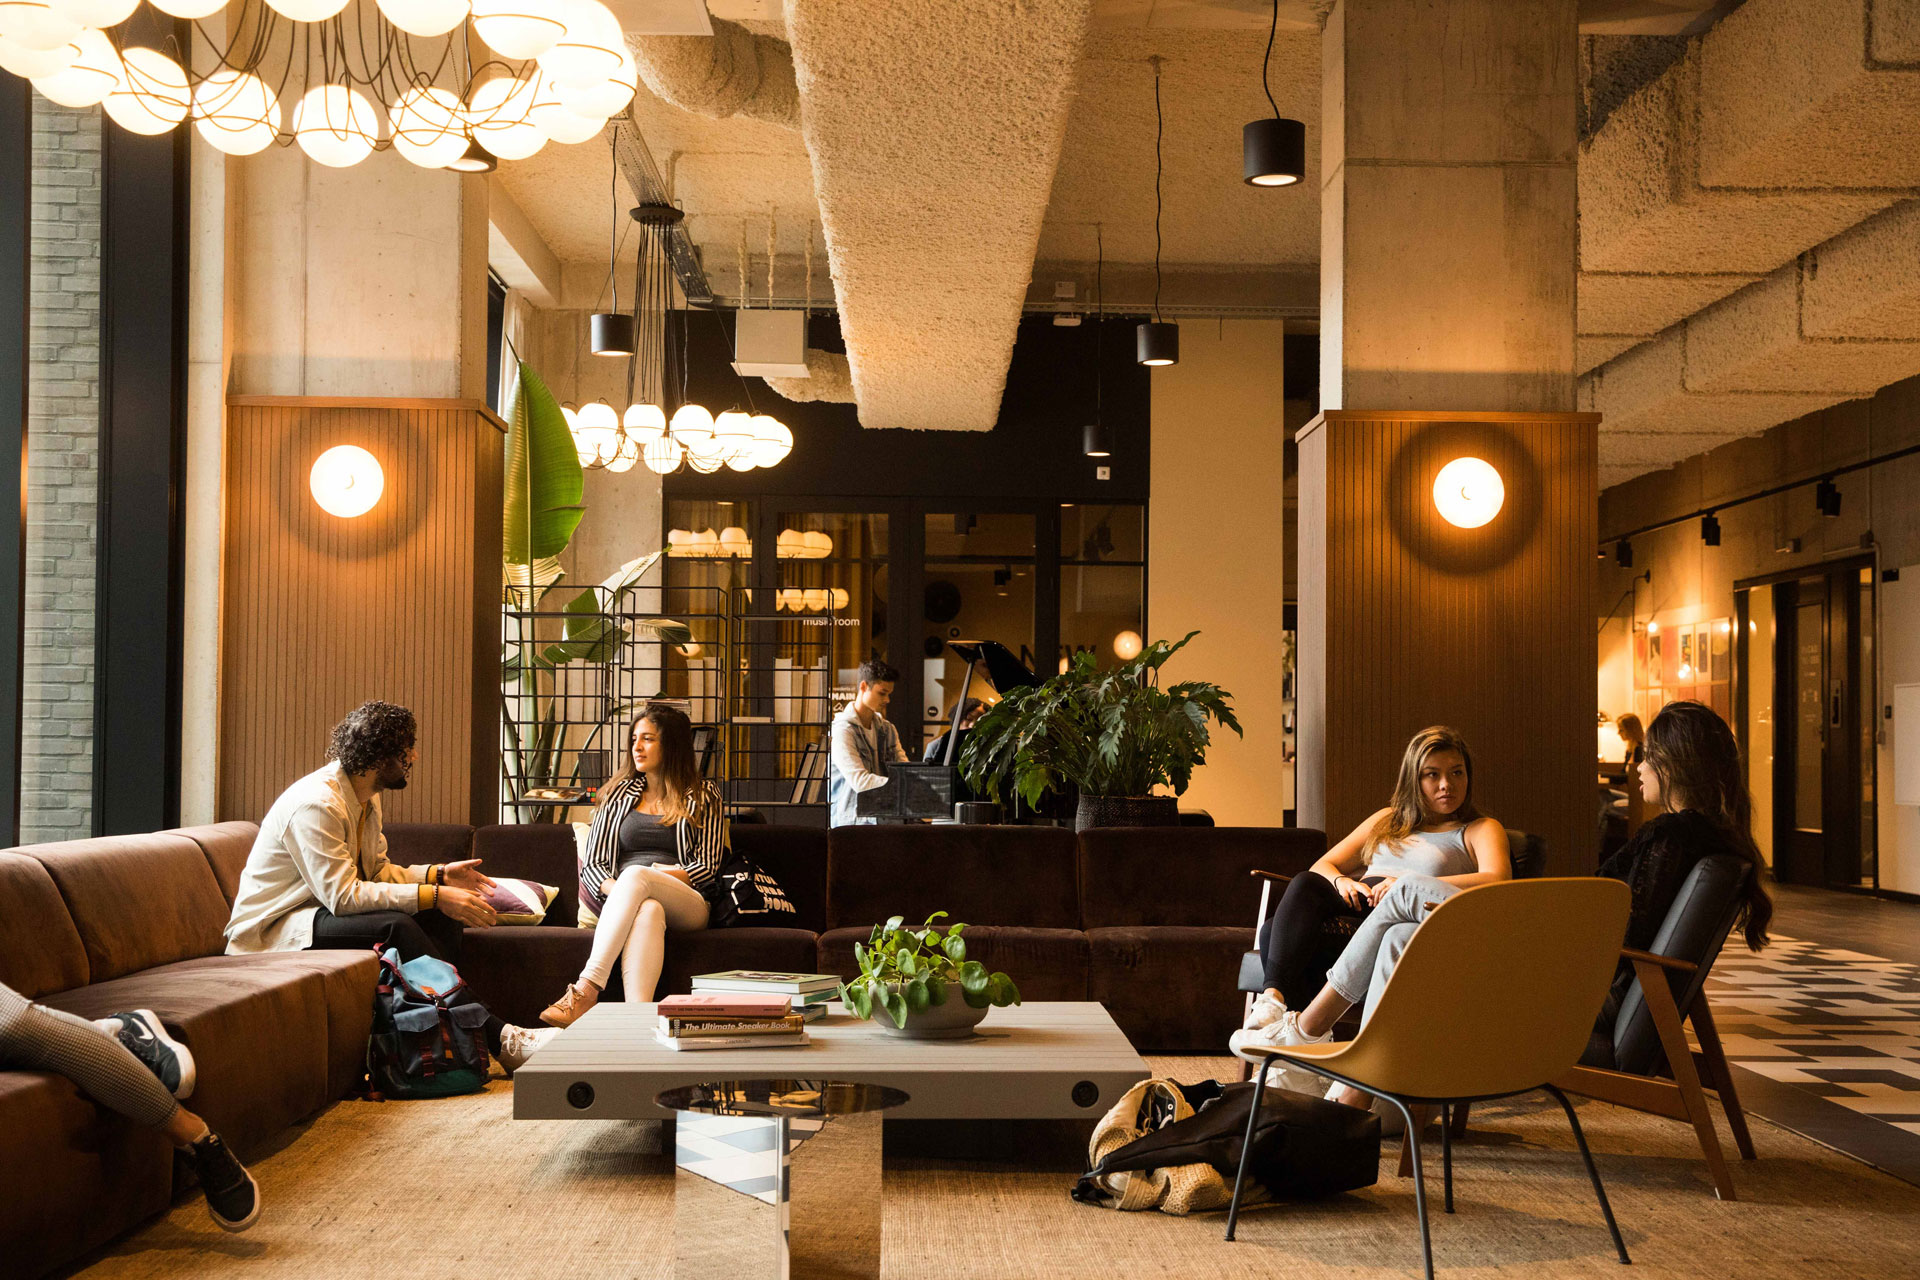 OurDomain Amsterdam South East Facilities: residents chilling in the common area